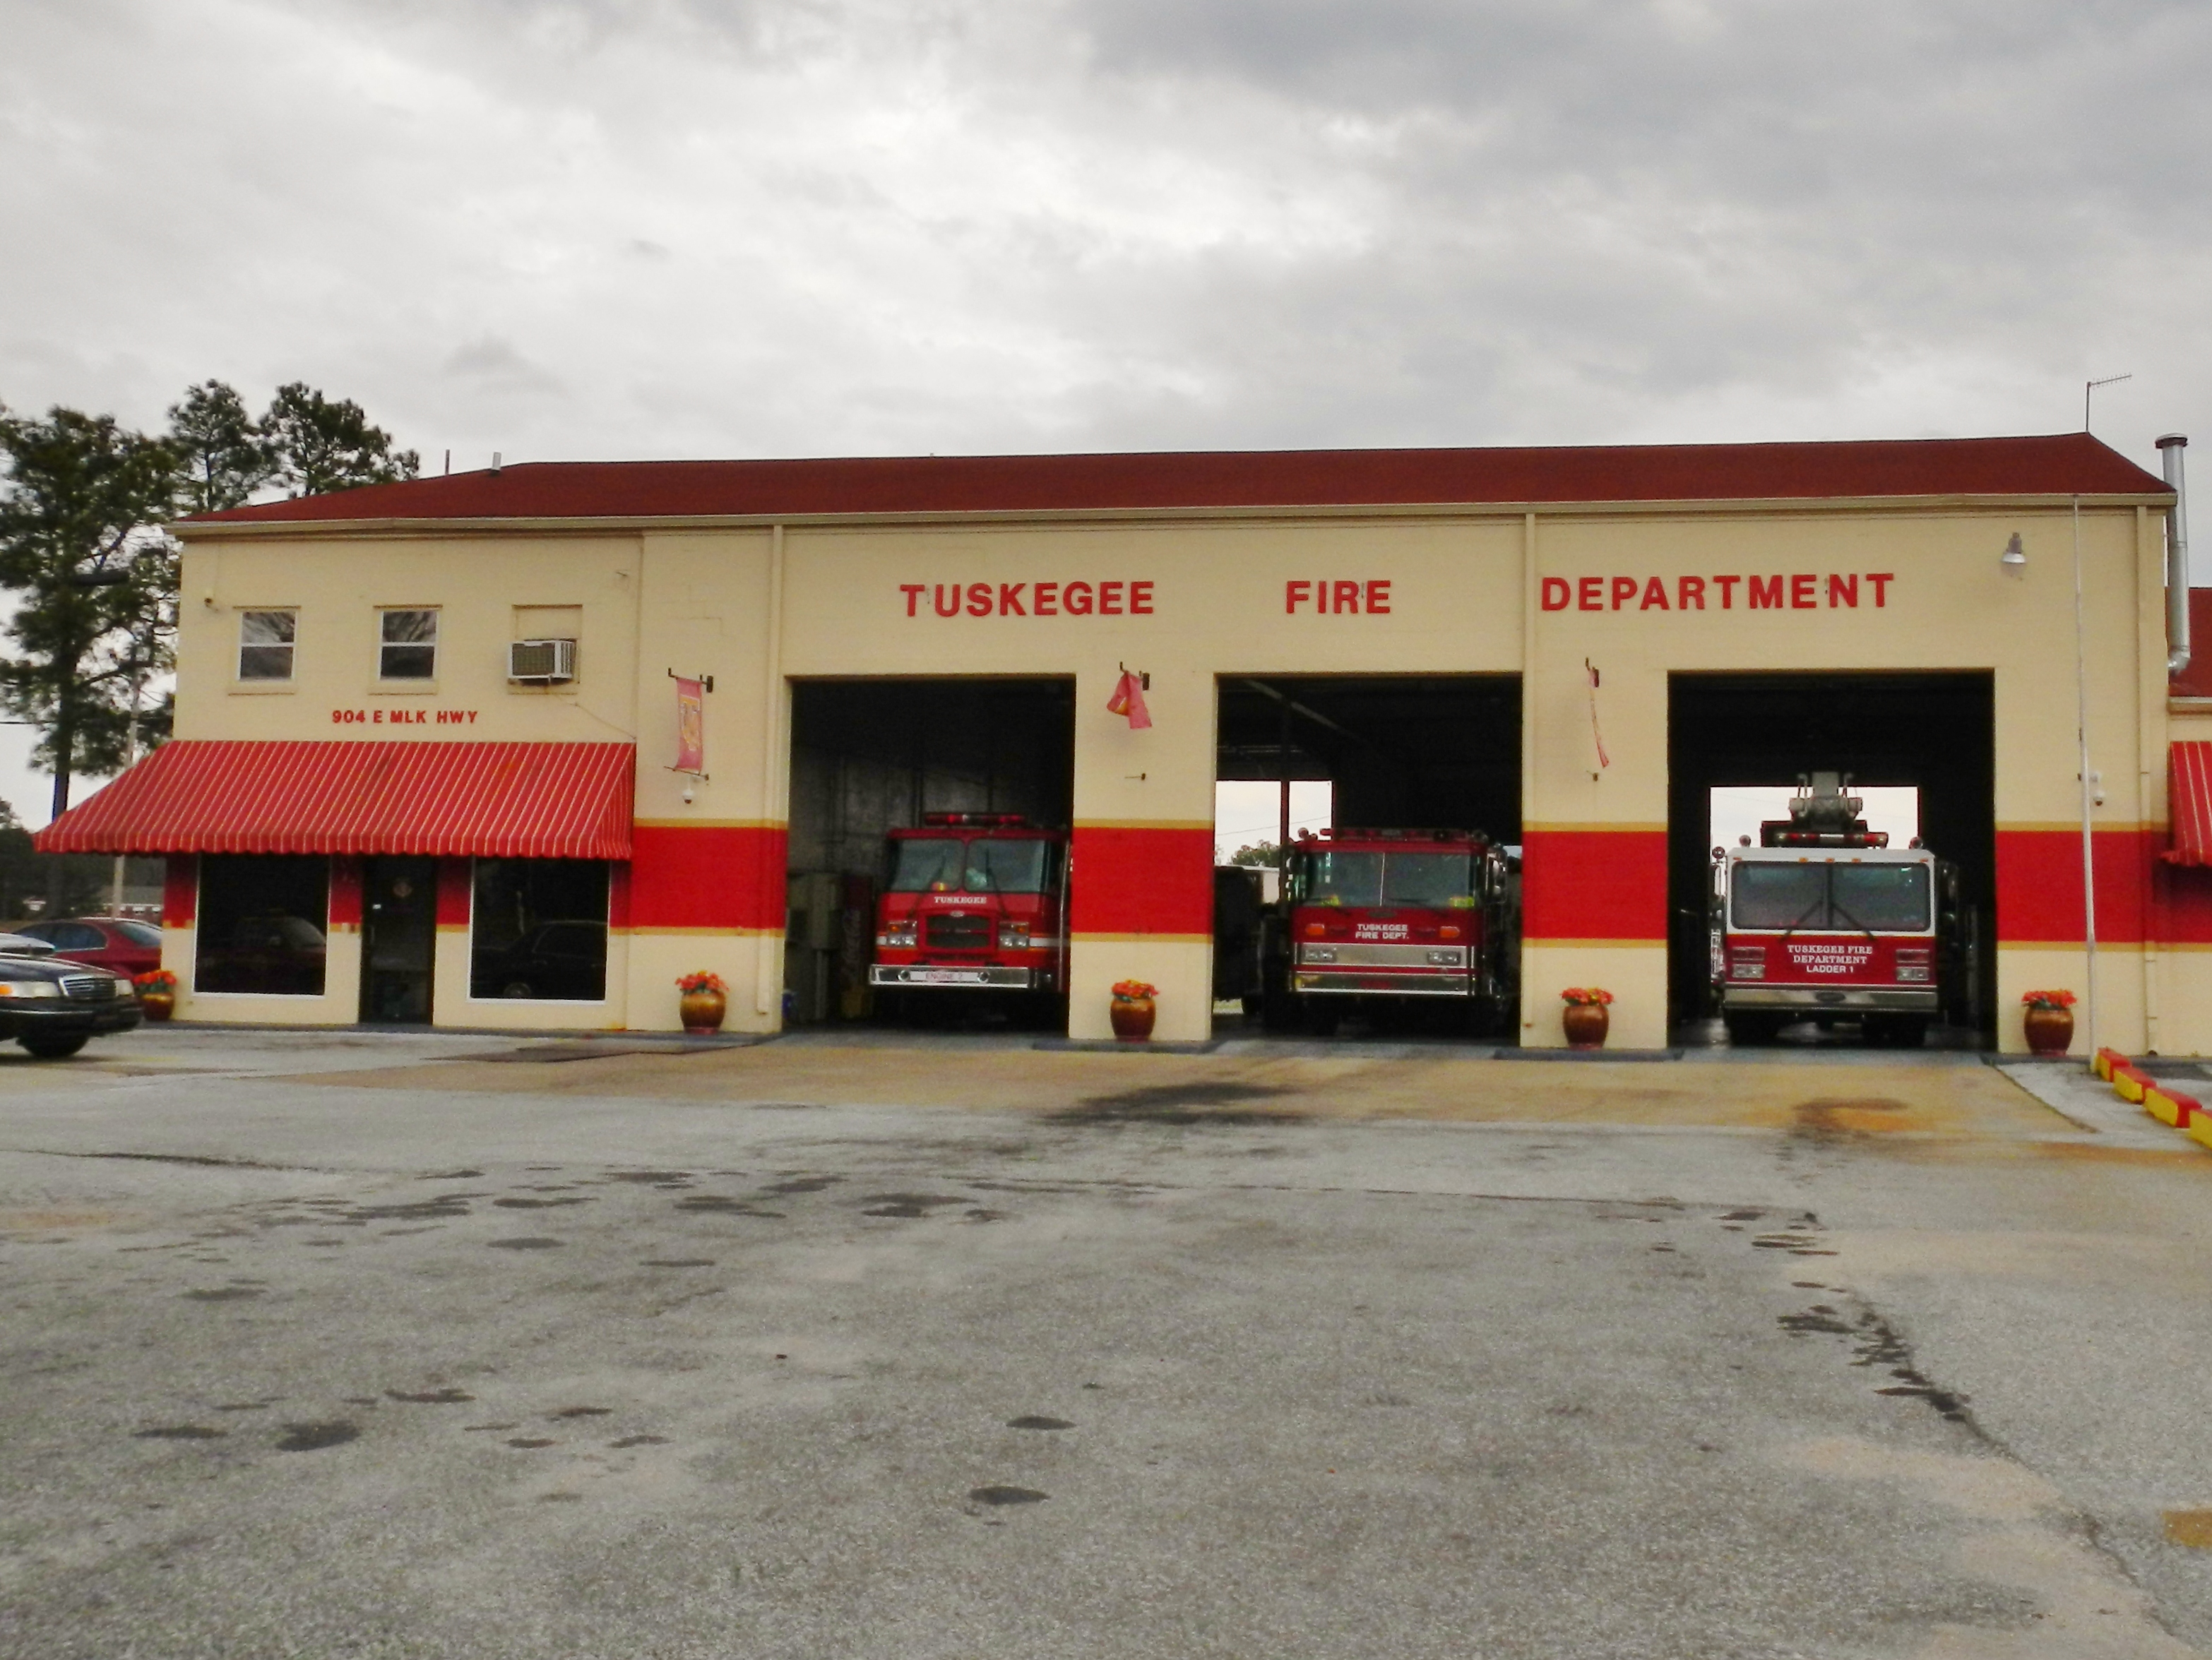 File:Tuskegee, Alabama Fire Department.JPG - Wikimedia Commons